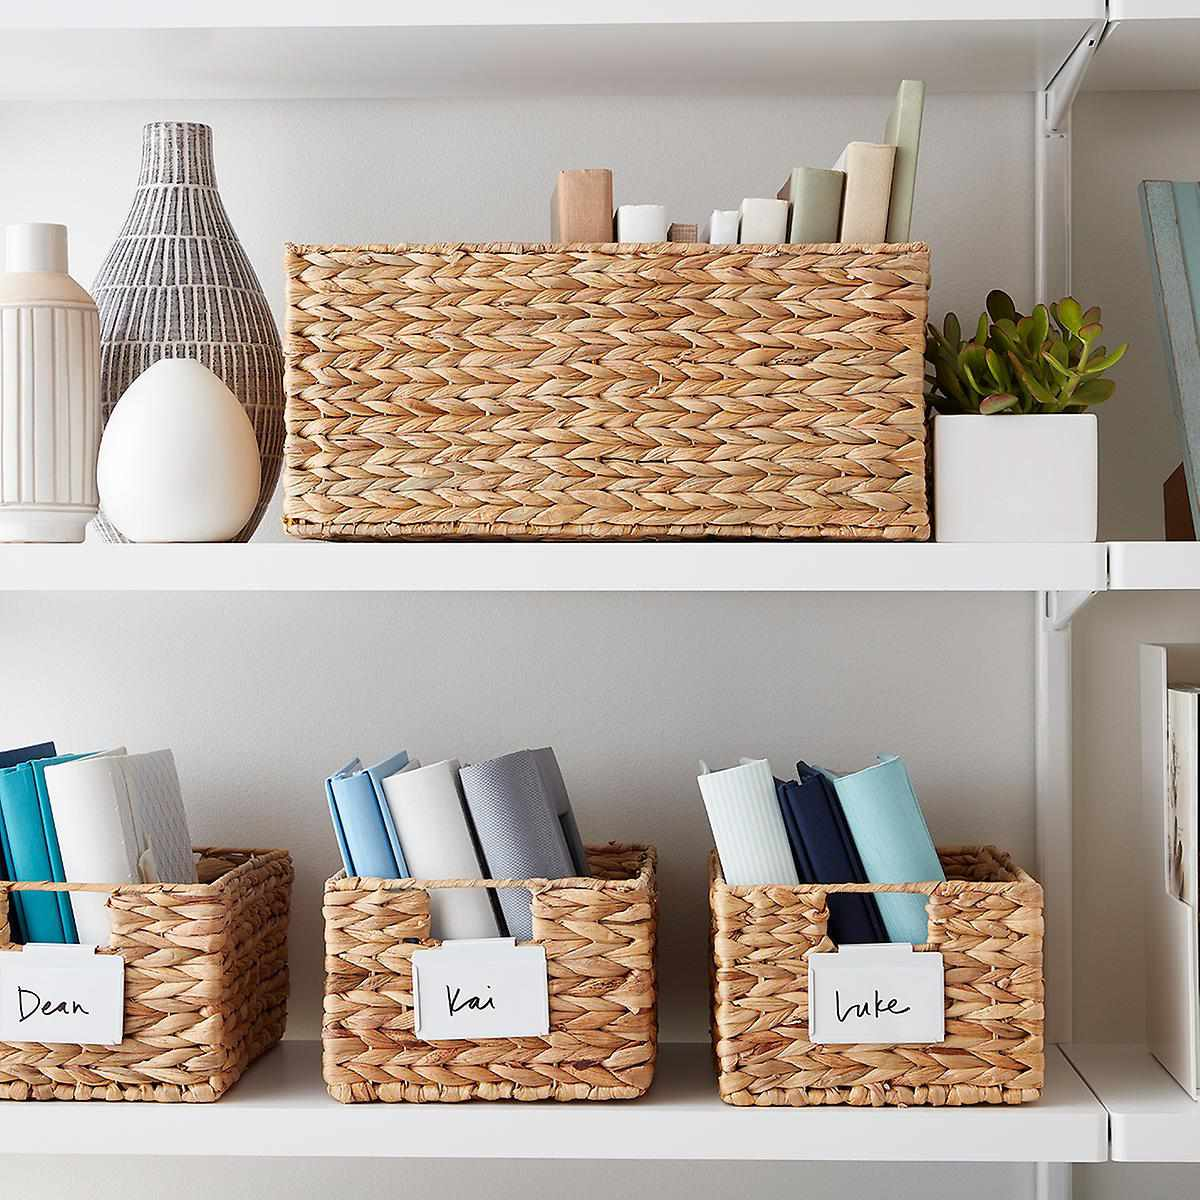 A woven basket, currently for sale at the Container Store